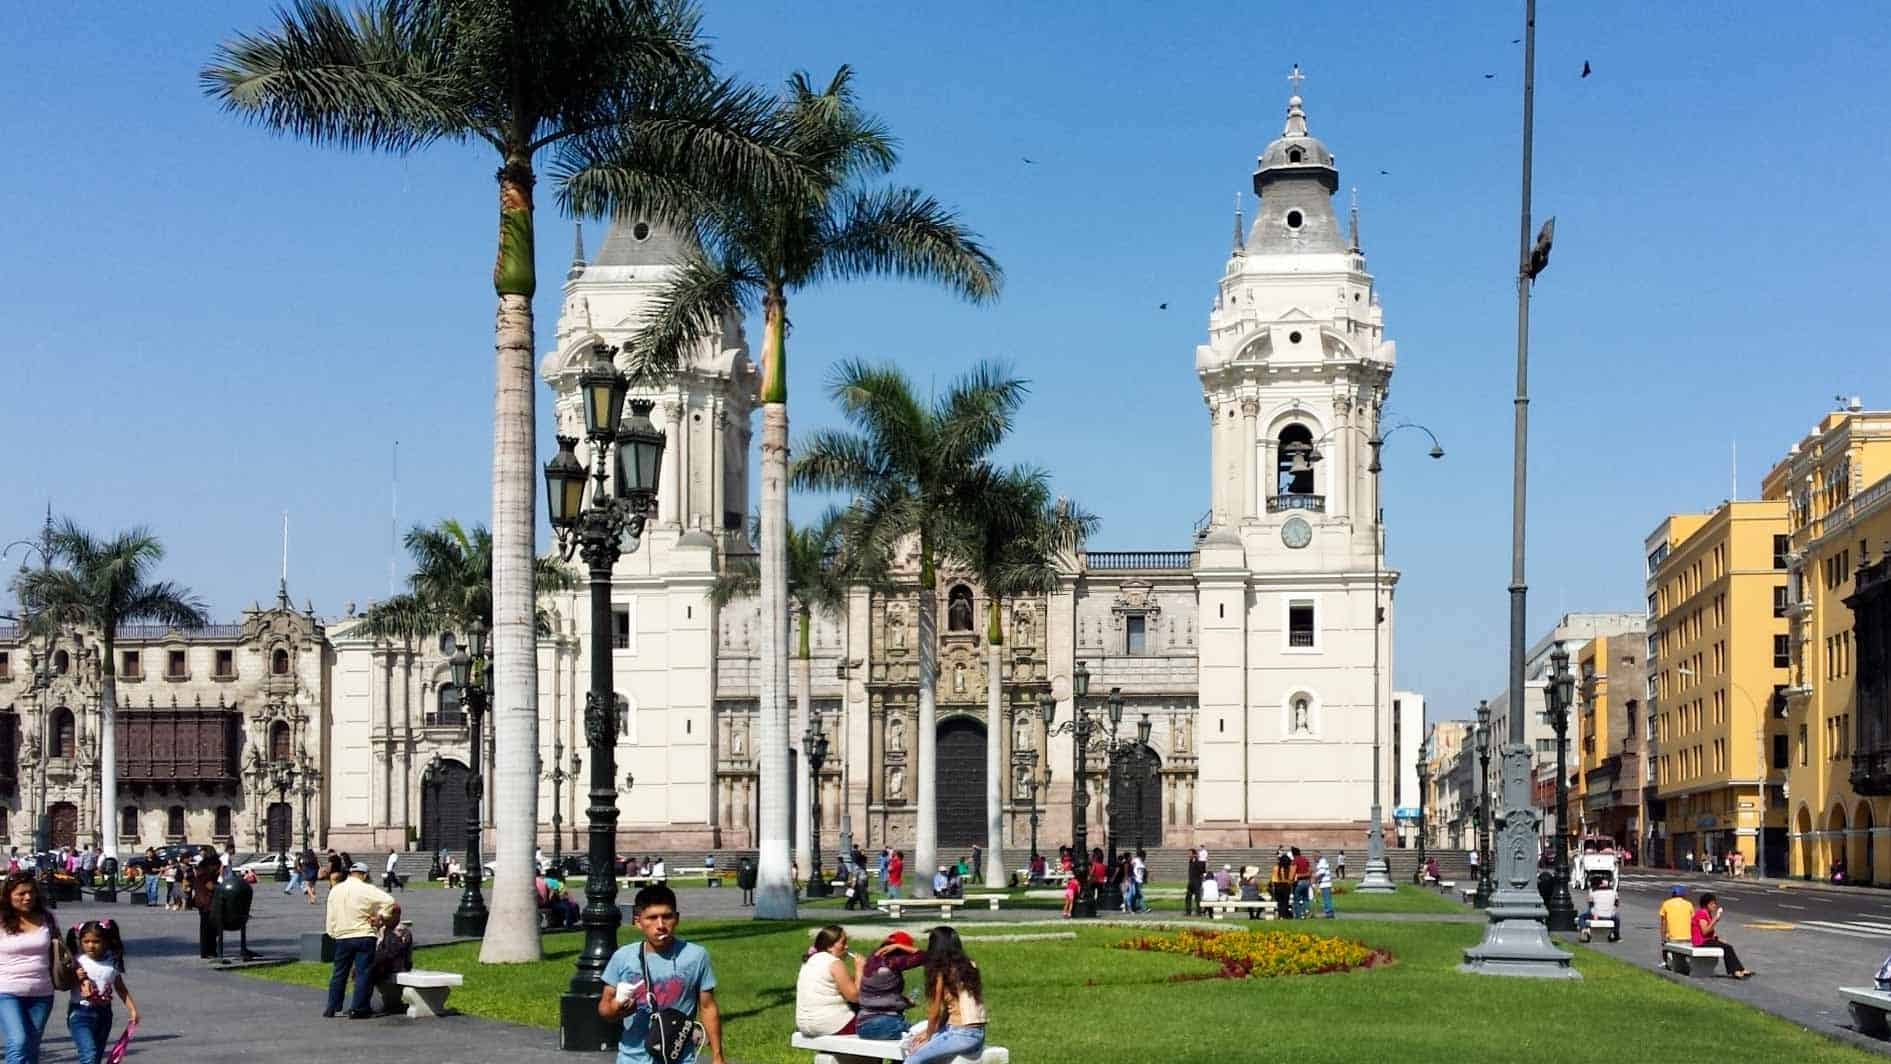 Plaza de Armas or Plza Mayor in Lima, Peru